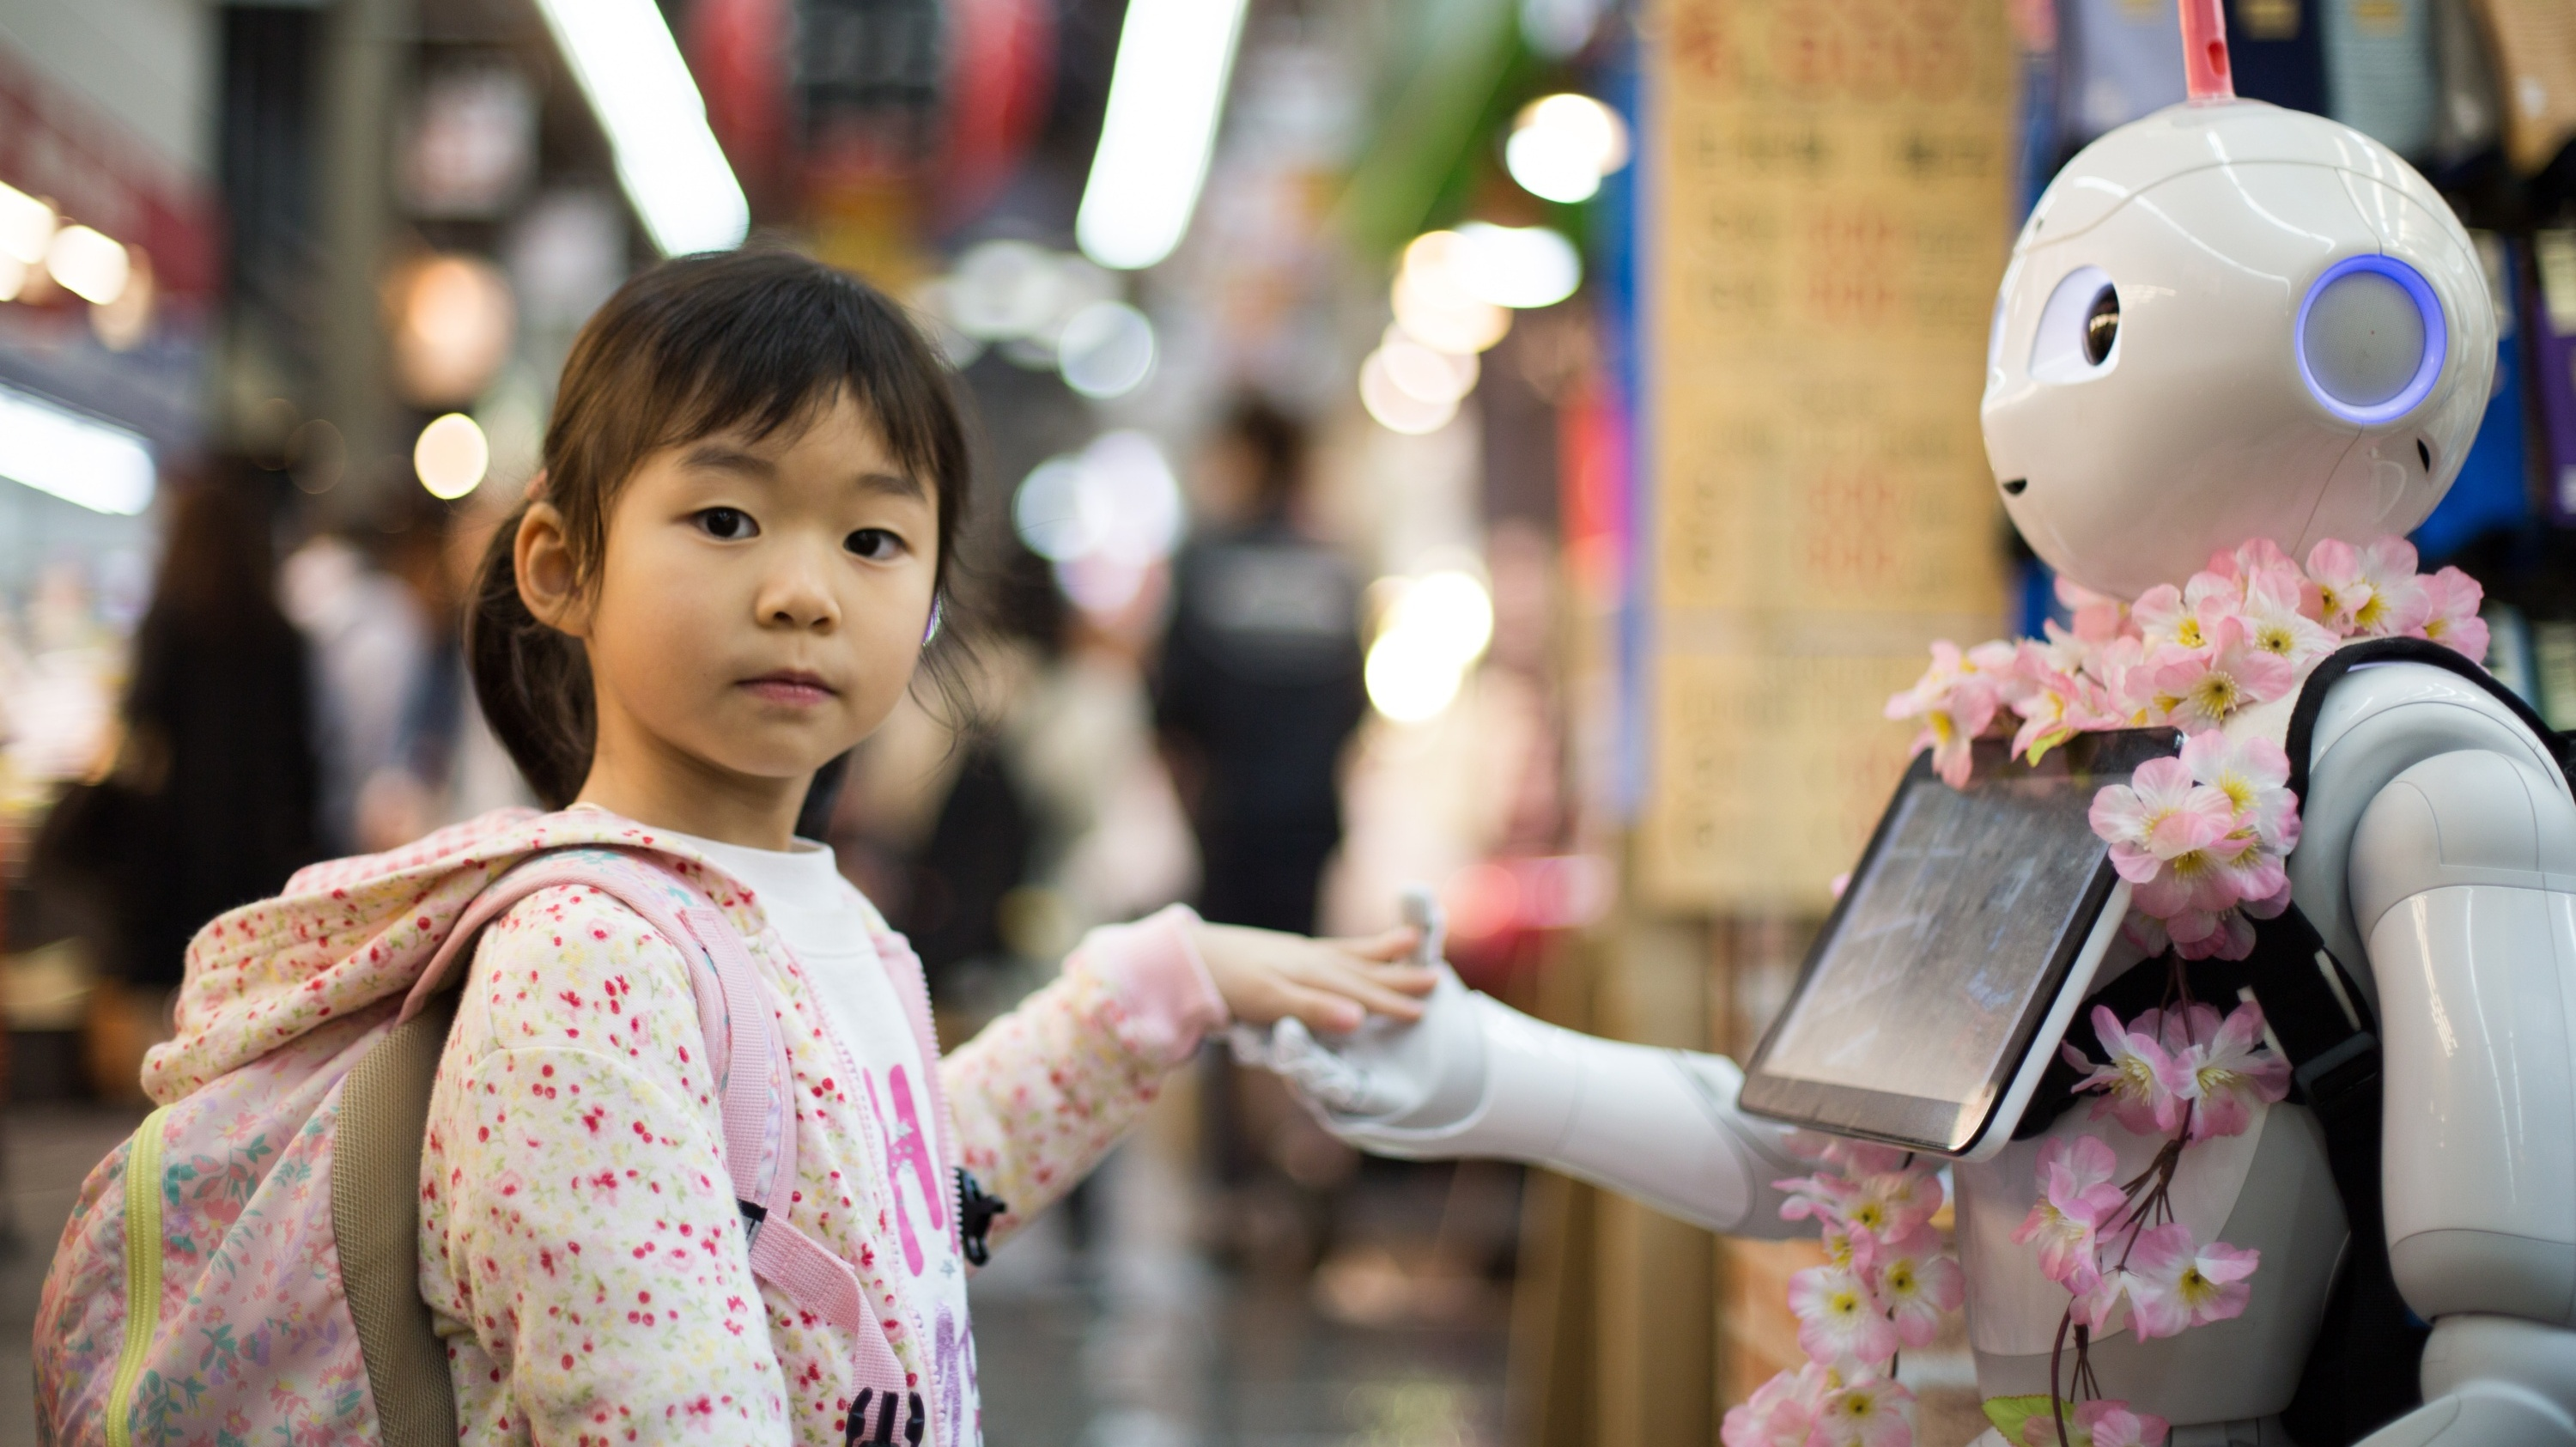 Image of a young girl holding the hand of a robot.